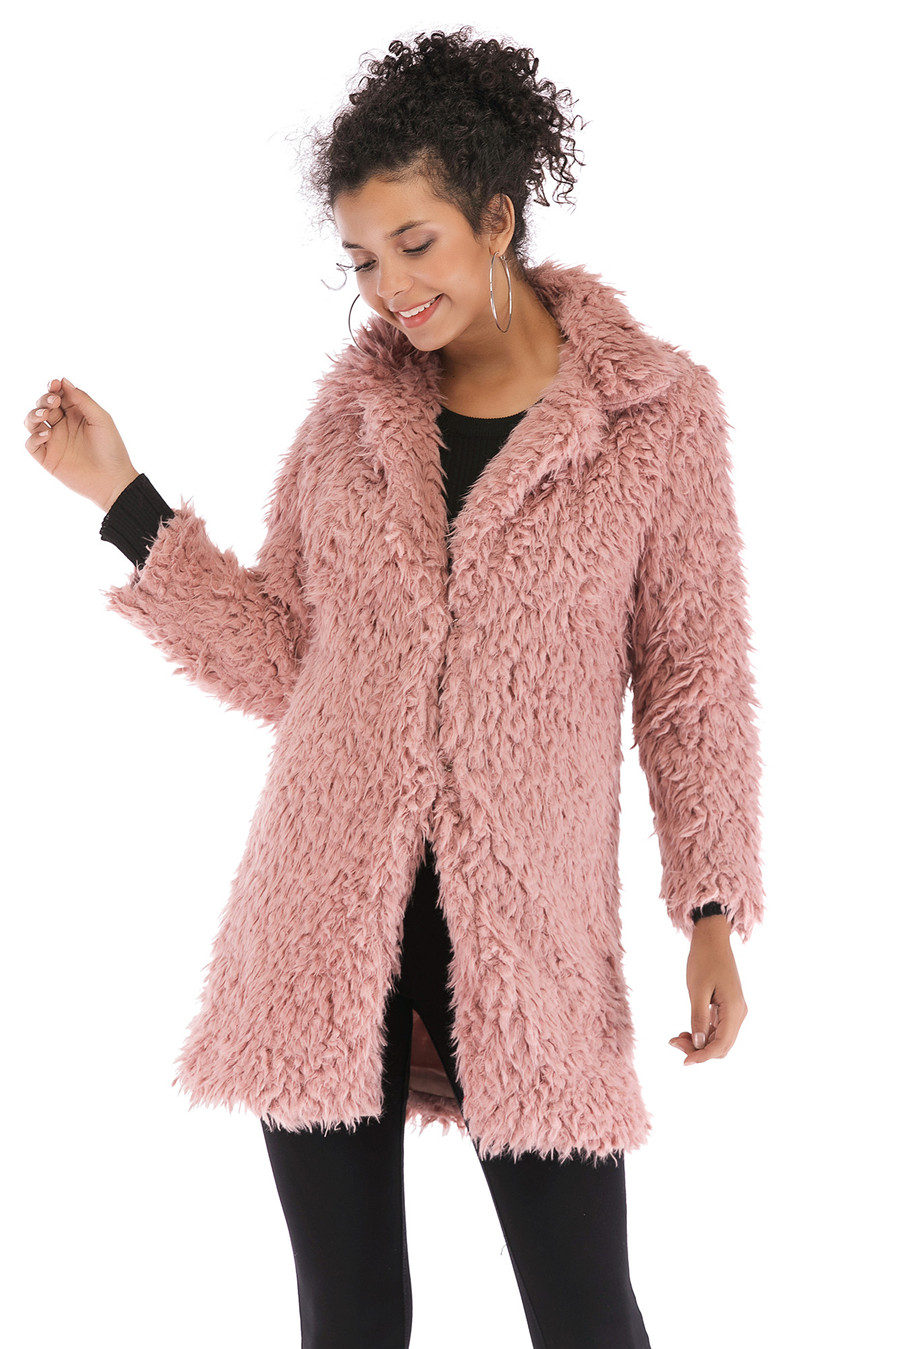 Gladiolus 2018 Women Autumn Winter Coat Turn-Down Collar Long Sleeve Covered Button Long Warm Shaggy Faux Fur Coat Women Jackets (29)